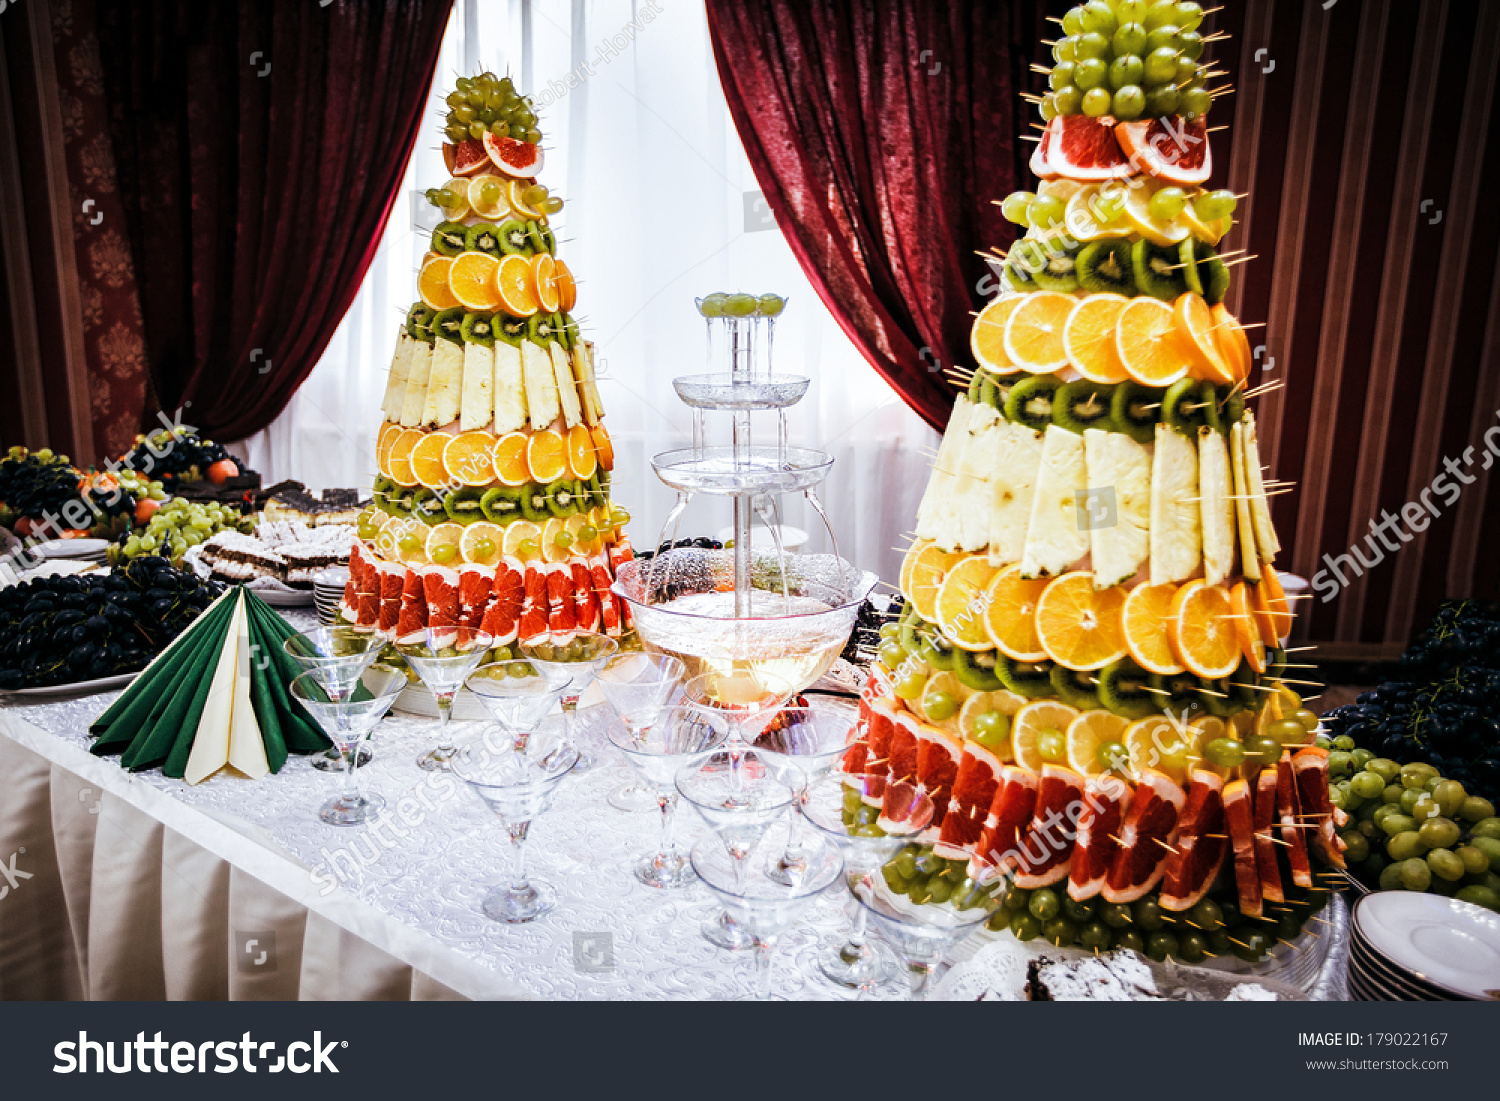 Champagne Fountain Decorations Fruit On Table Stock Photo Royalty